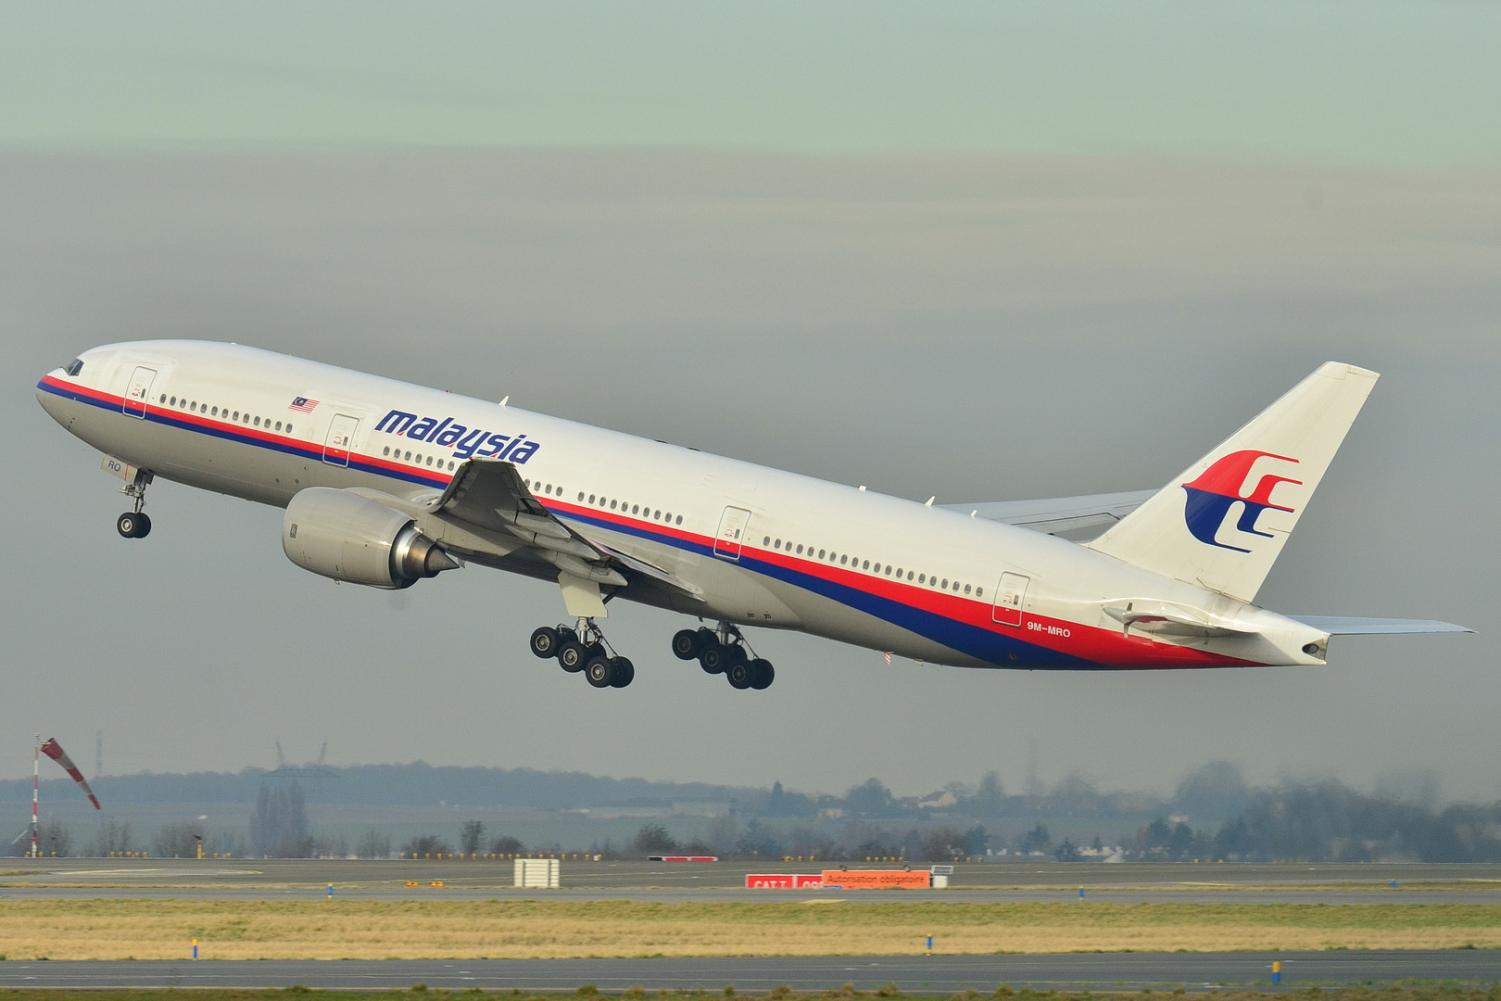 Taking off from the runway, this plane flies into the air with hopes of a smooth and safe ride to the next destination. Malaysian flight 370 disappeared at the beginning of 2014 and is still missing to this day, leaving families confused about what happened to their loved ones.